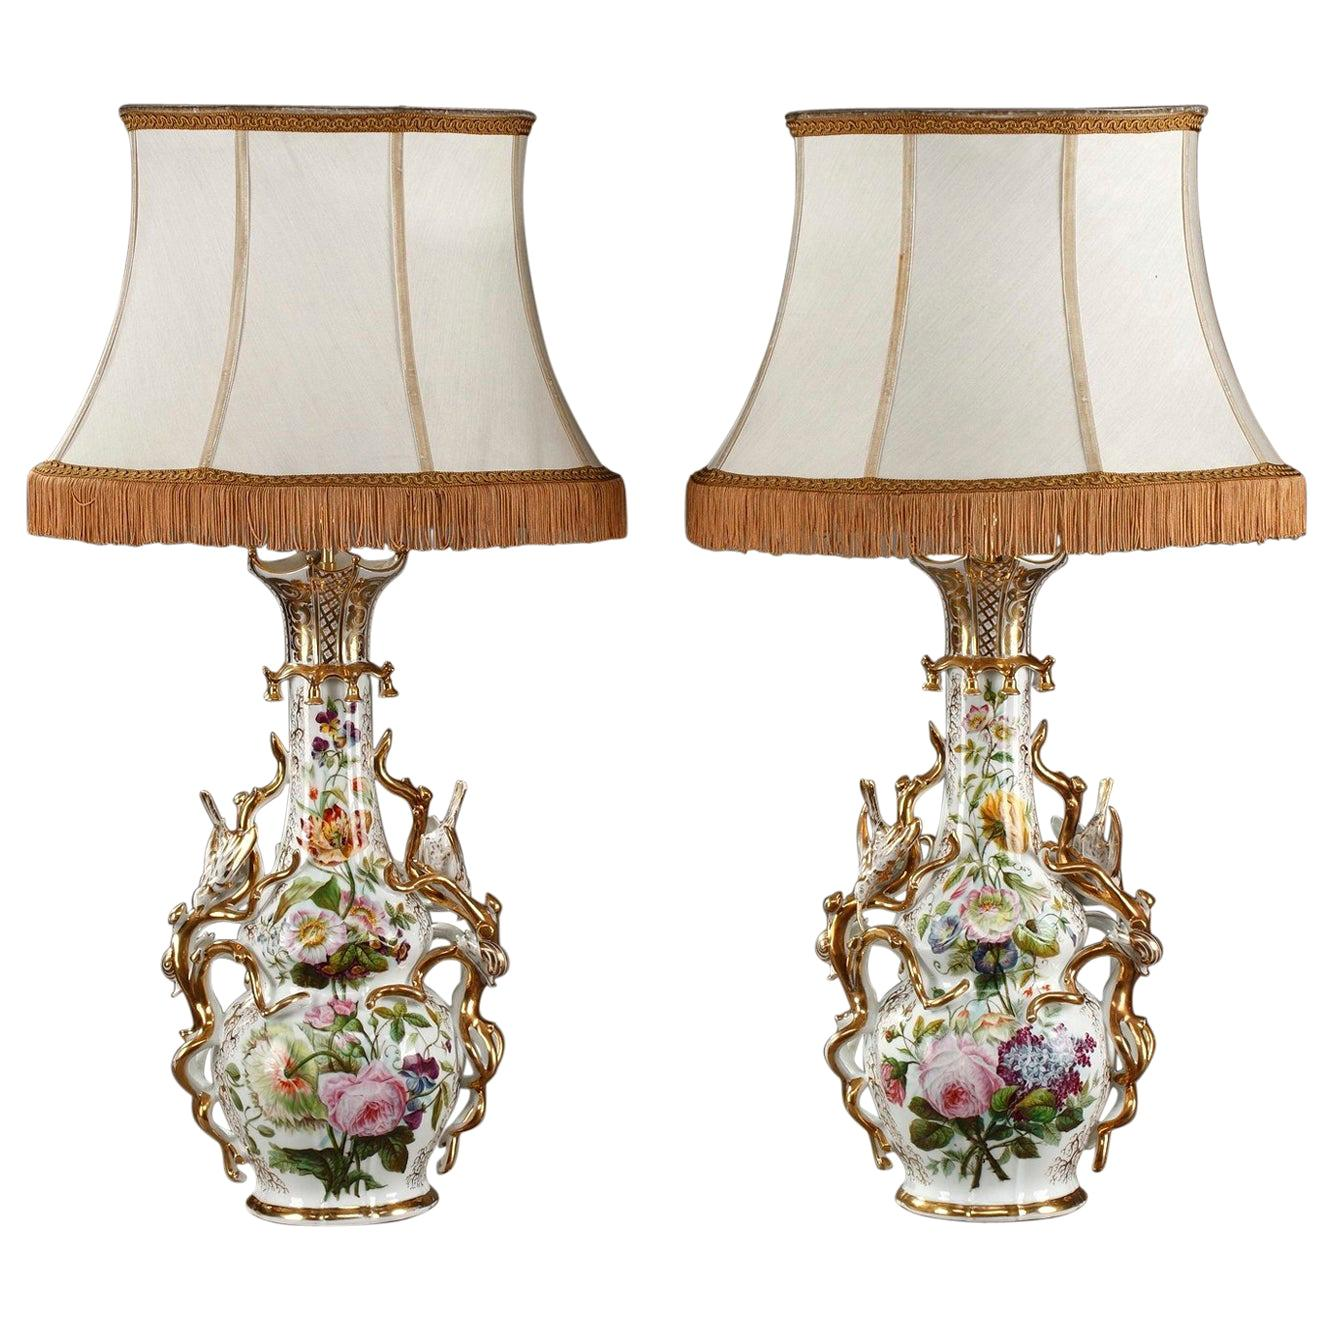 Pair of French Porcelain Vase-Mounted as Lamps in Louis XV Style